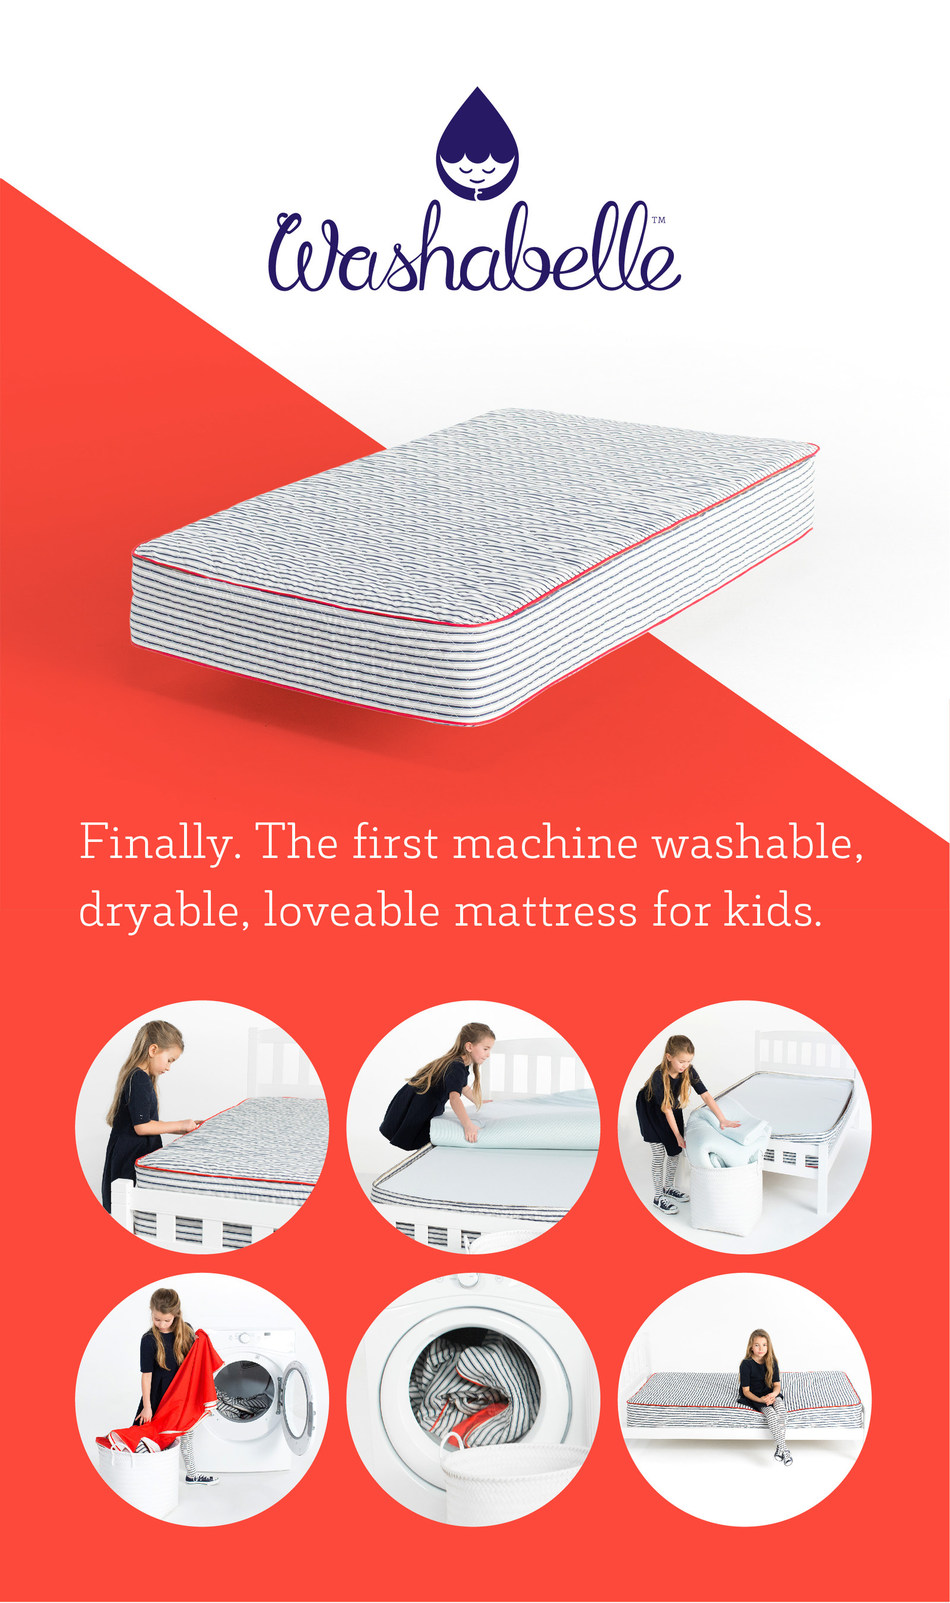 Mom invents machine washable mattress for kids